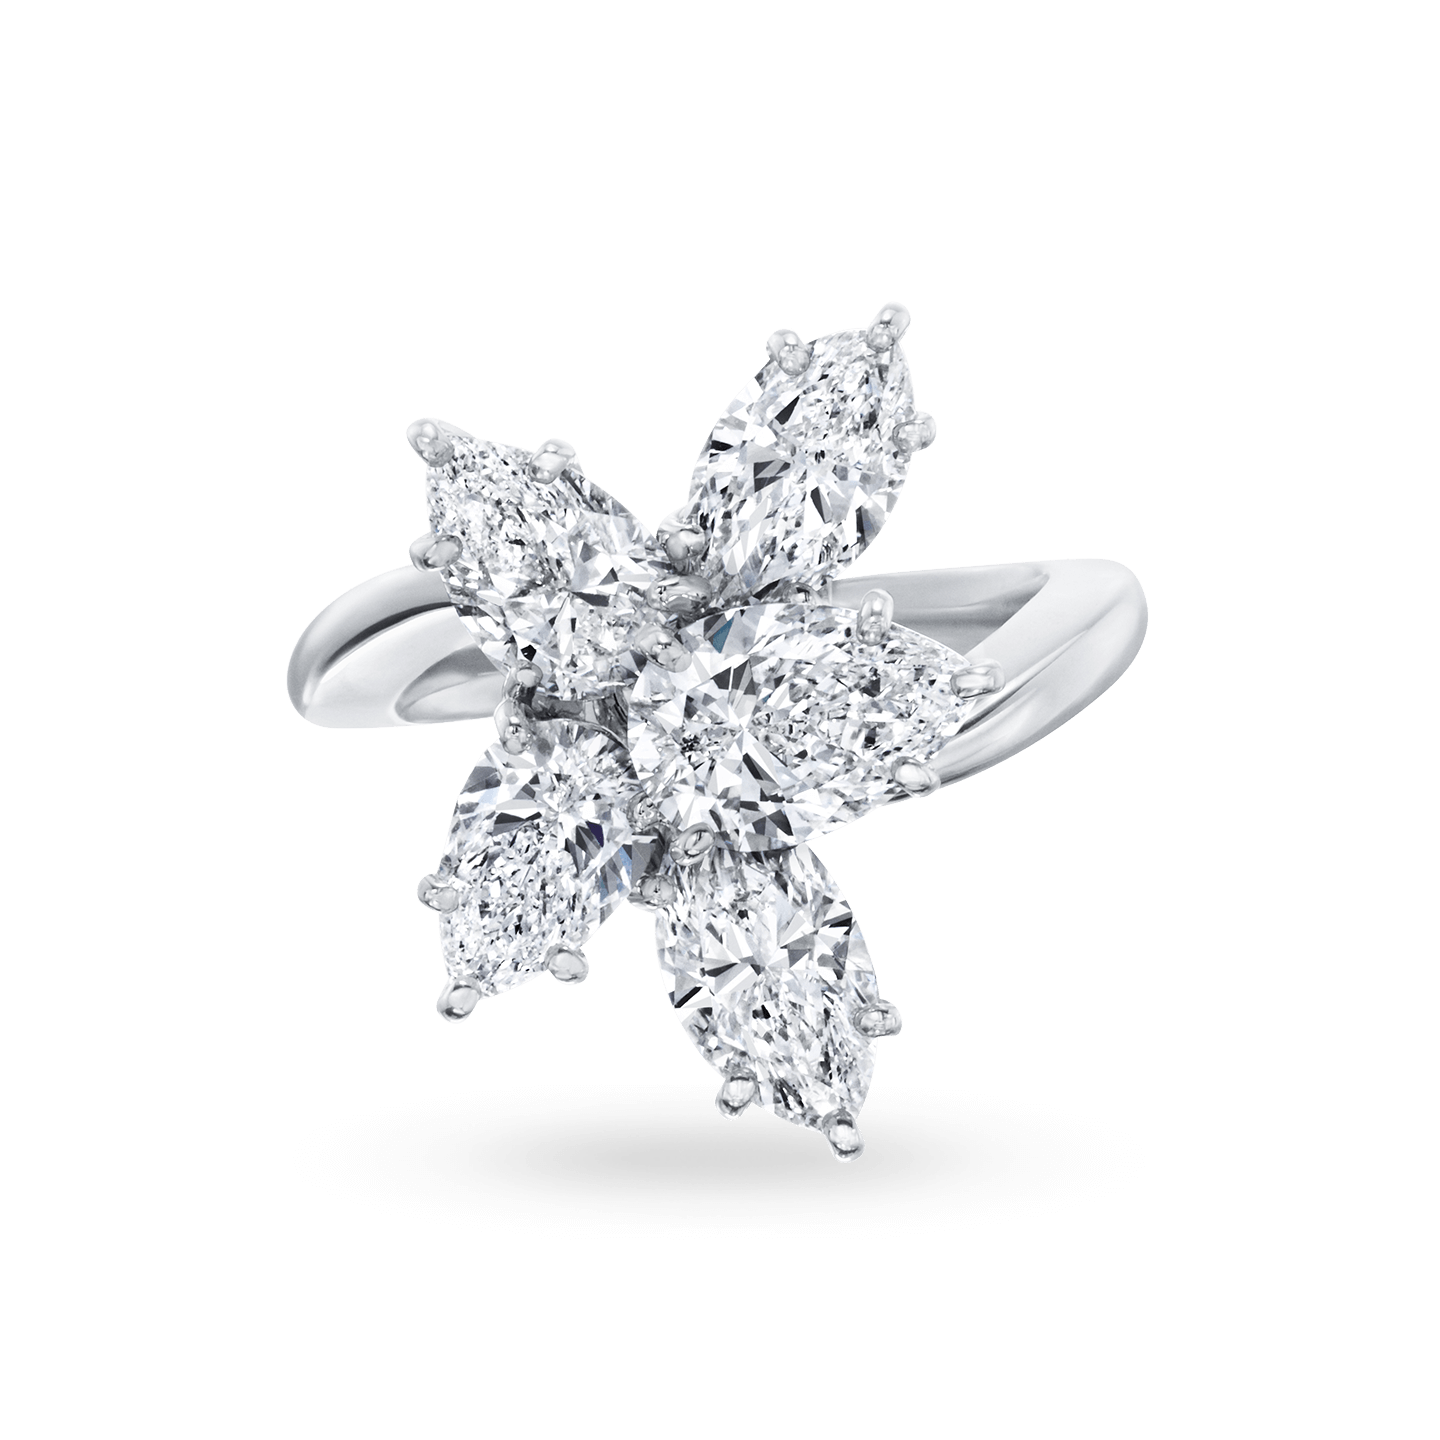 Winston Cluster Large Diamond Ring, Product Image 1